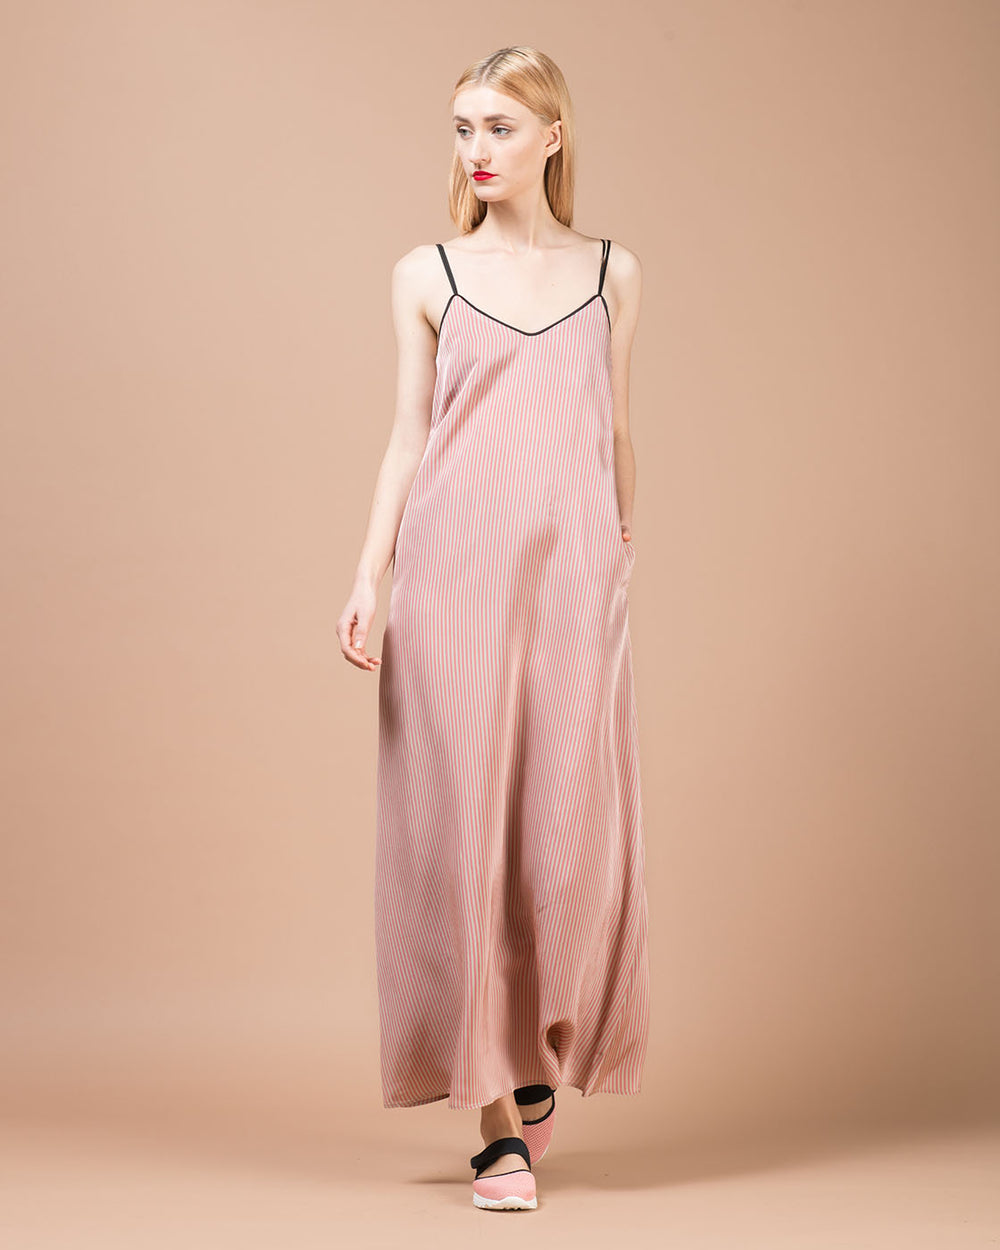 Pink & Beige Striped Long Dress